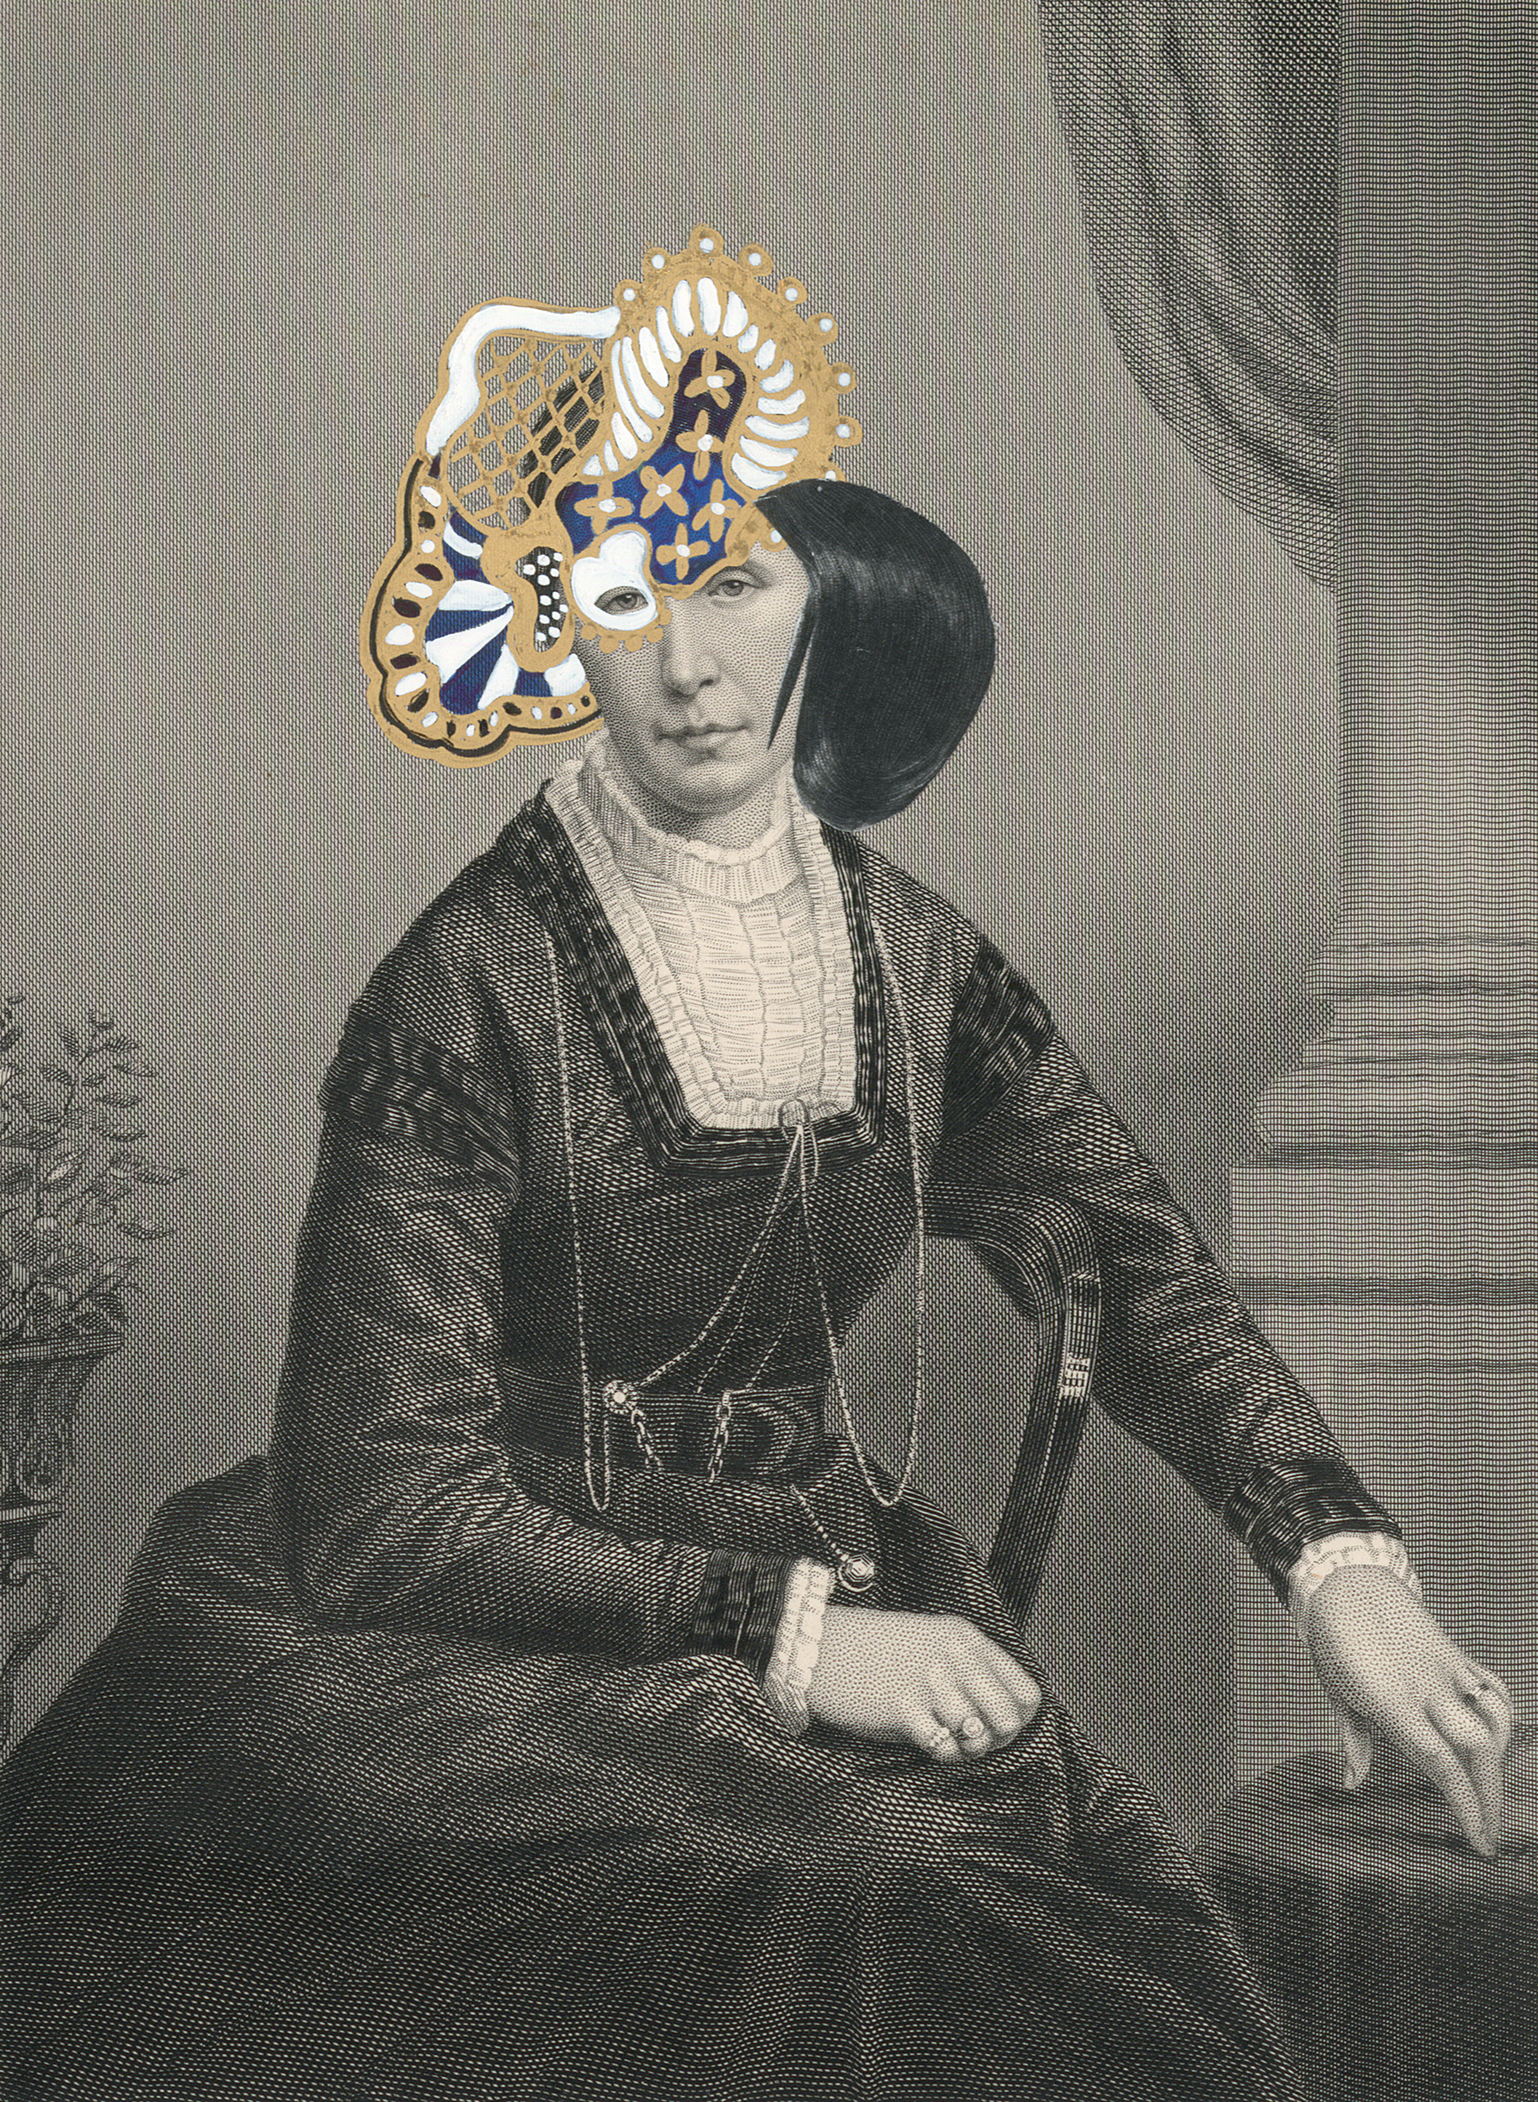 "Mrs. Edward Salisbury 1859/2014  , gouache, ink, gold paint, and collage on 19th century engraving, 7"" x 5"", 2014"